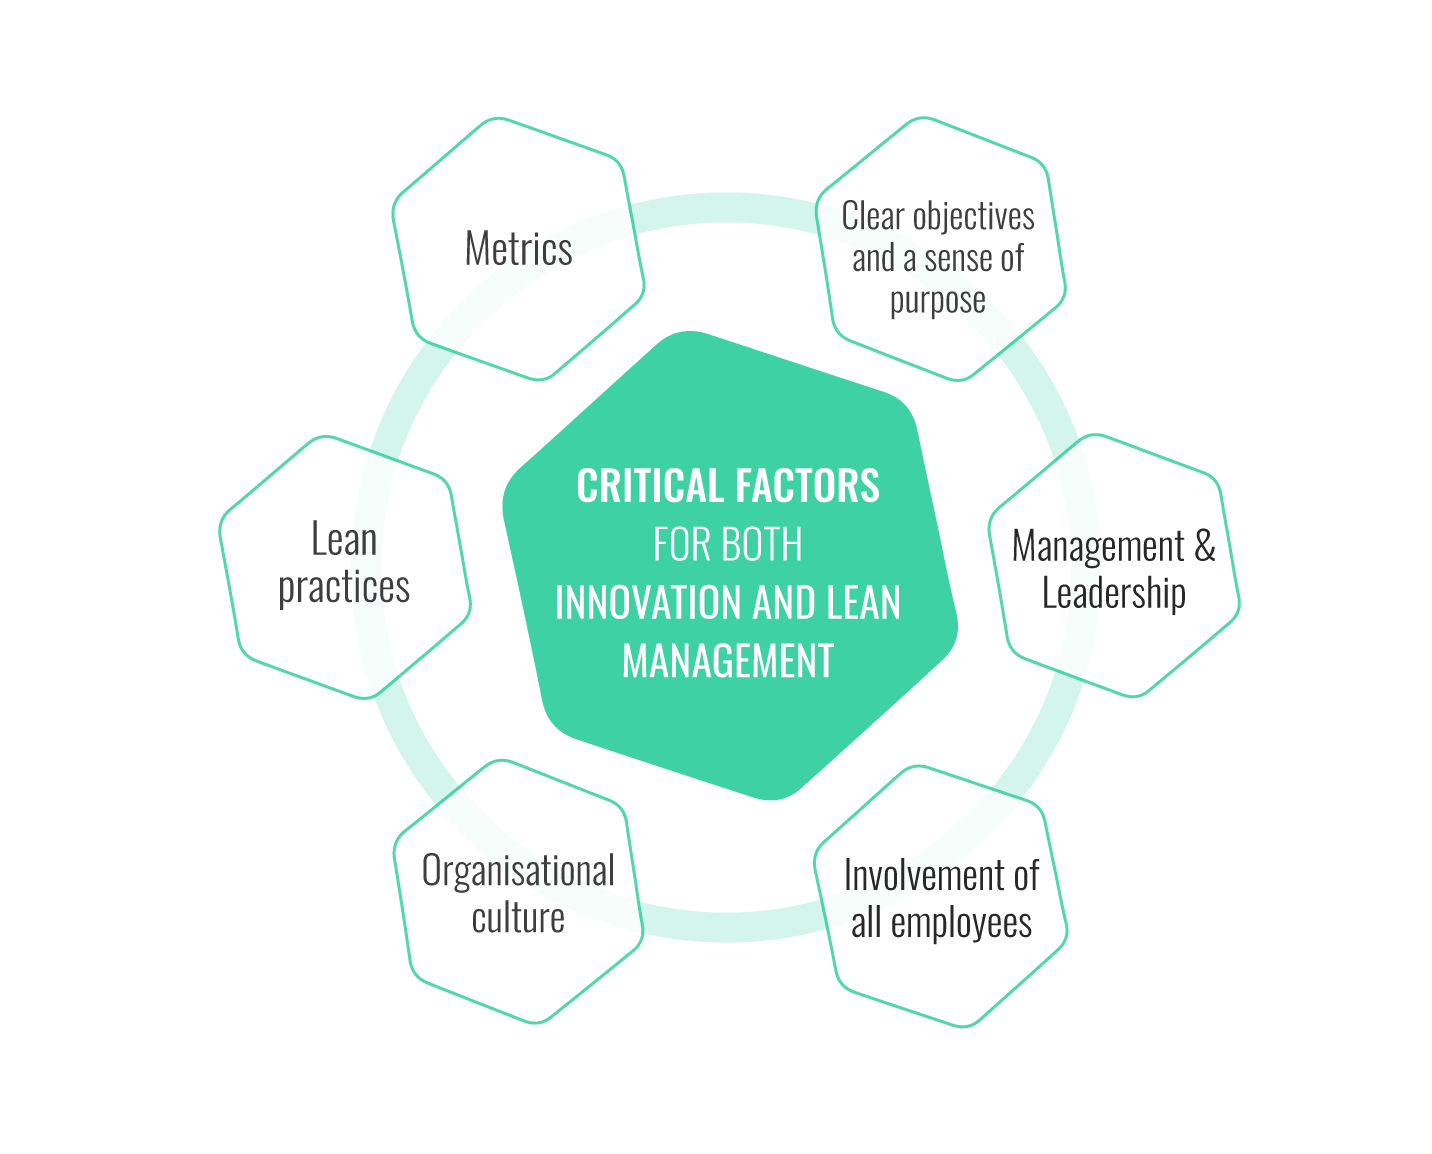 Critical factors shared by Lean and Innovation Management